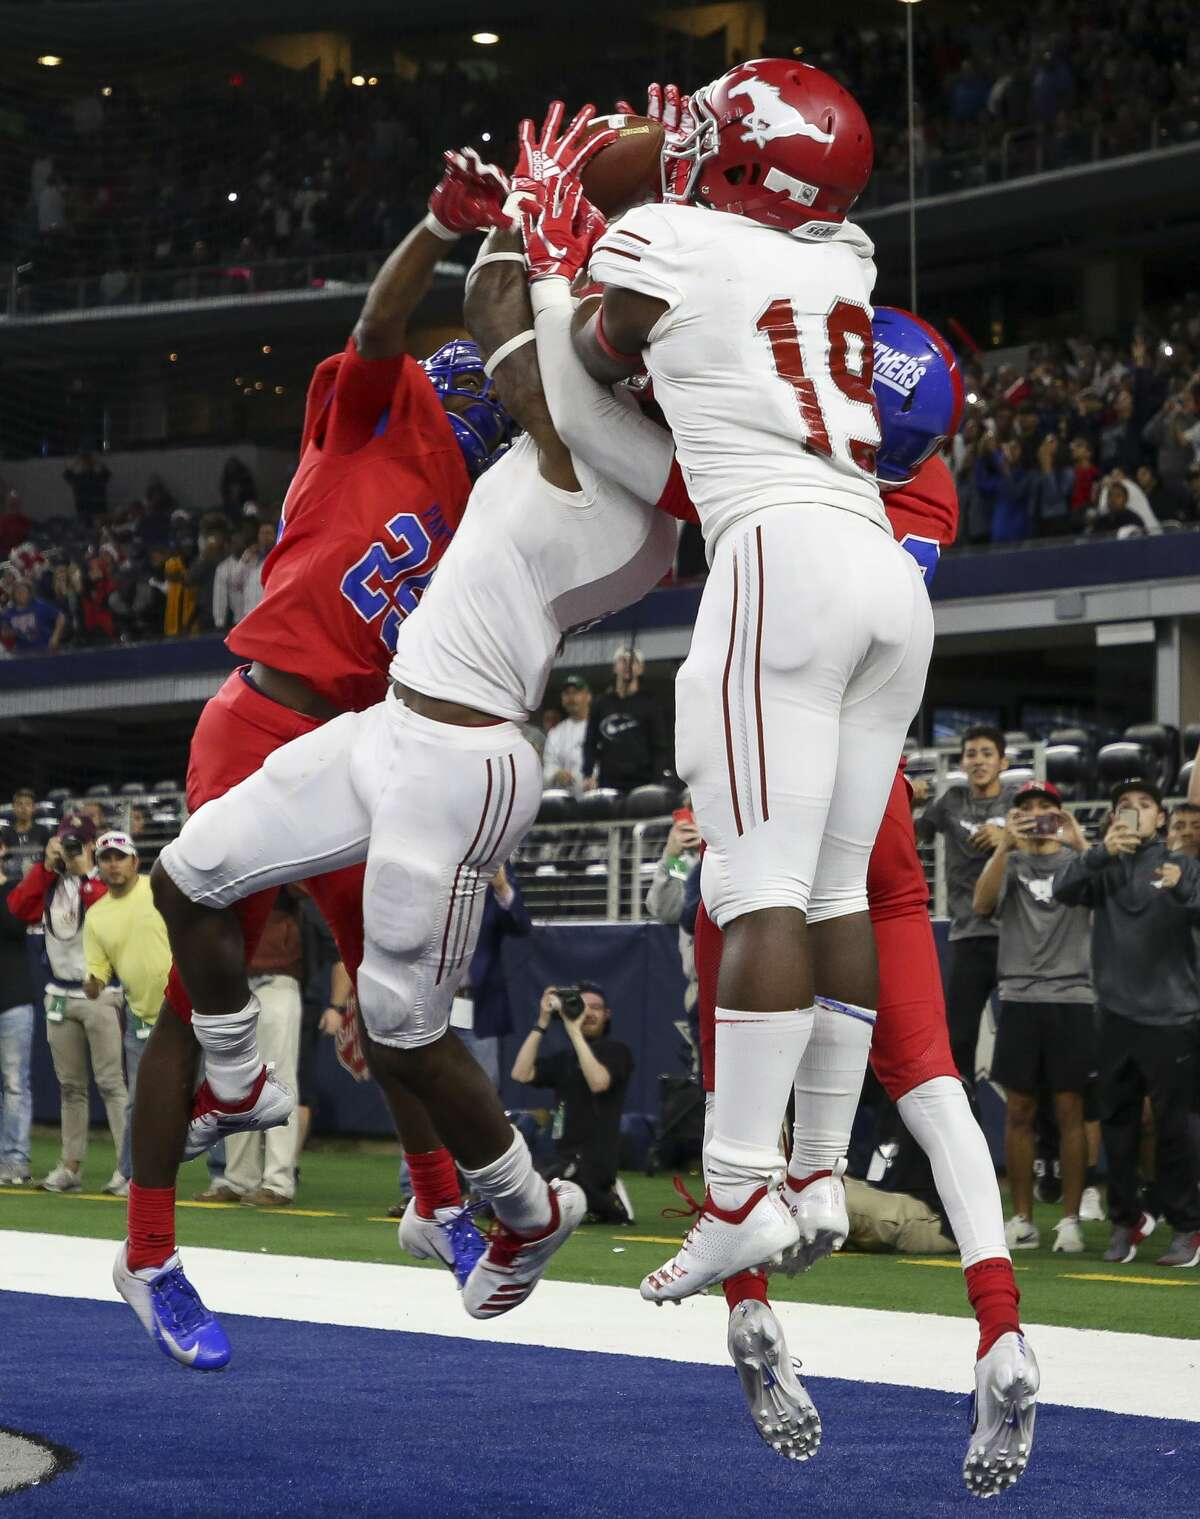 Galena Park North Shore wide receiver A.J. Carter (center) makes the touchdown catch to win the 6A Division 1 state championship on the final play against Duncanville at AT&T Stadium Saturday, Dec. 22, 2018, in Arlington, Texas. Galena Park North Shore won 41-36.